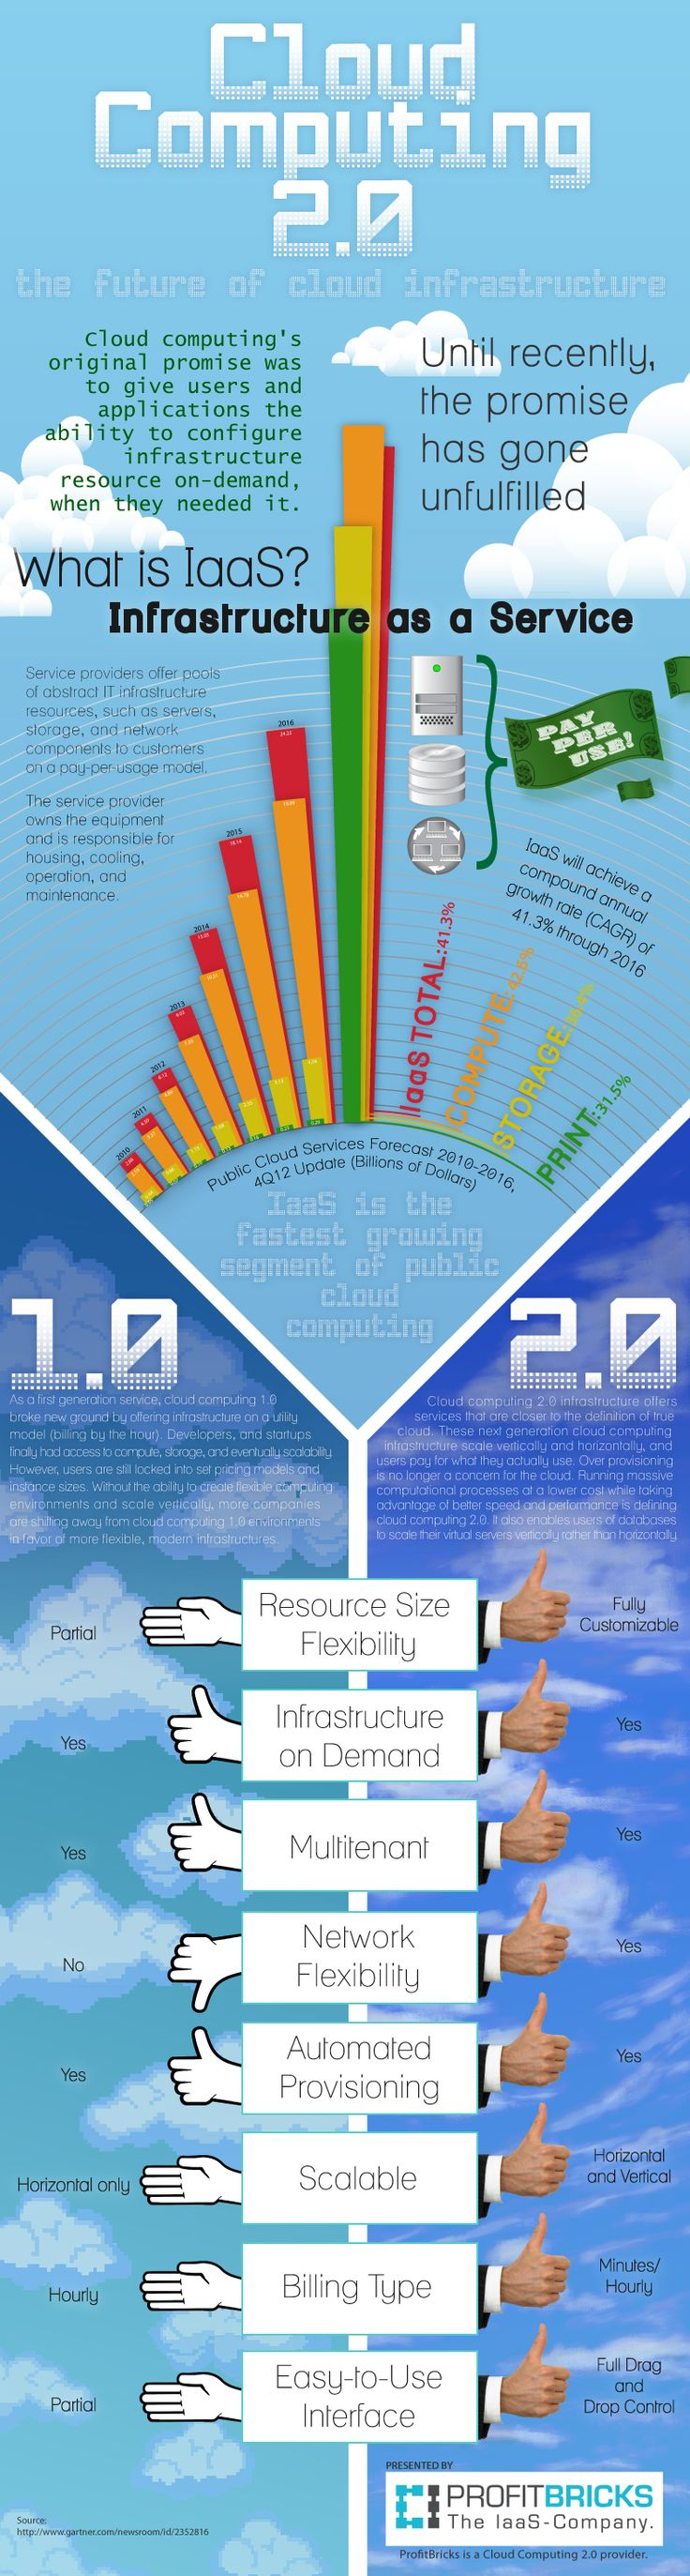 INFOGRAPHIC: Cloud Computing 2.0